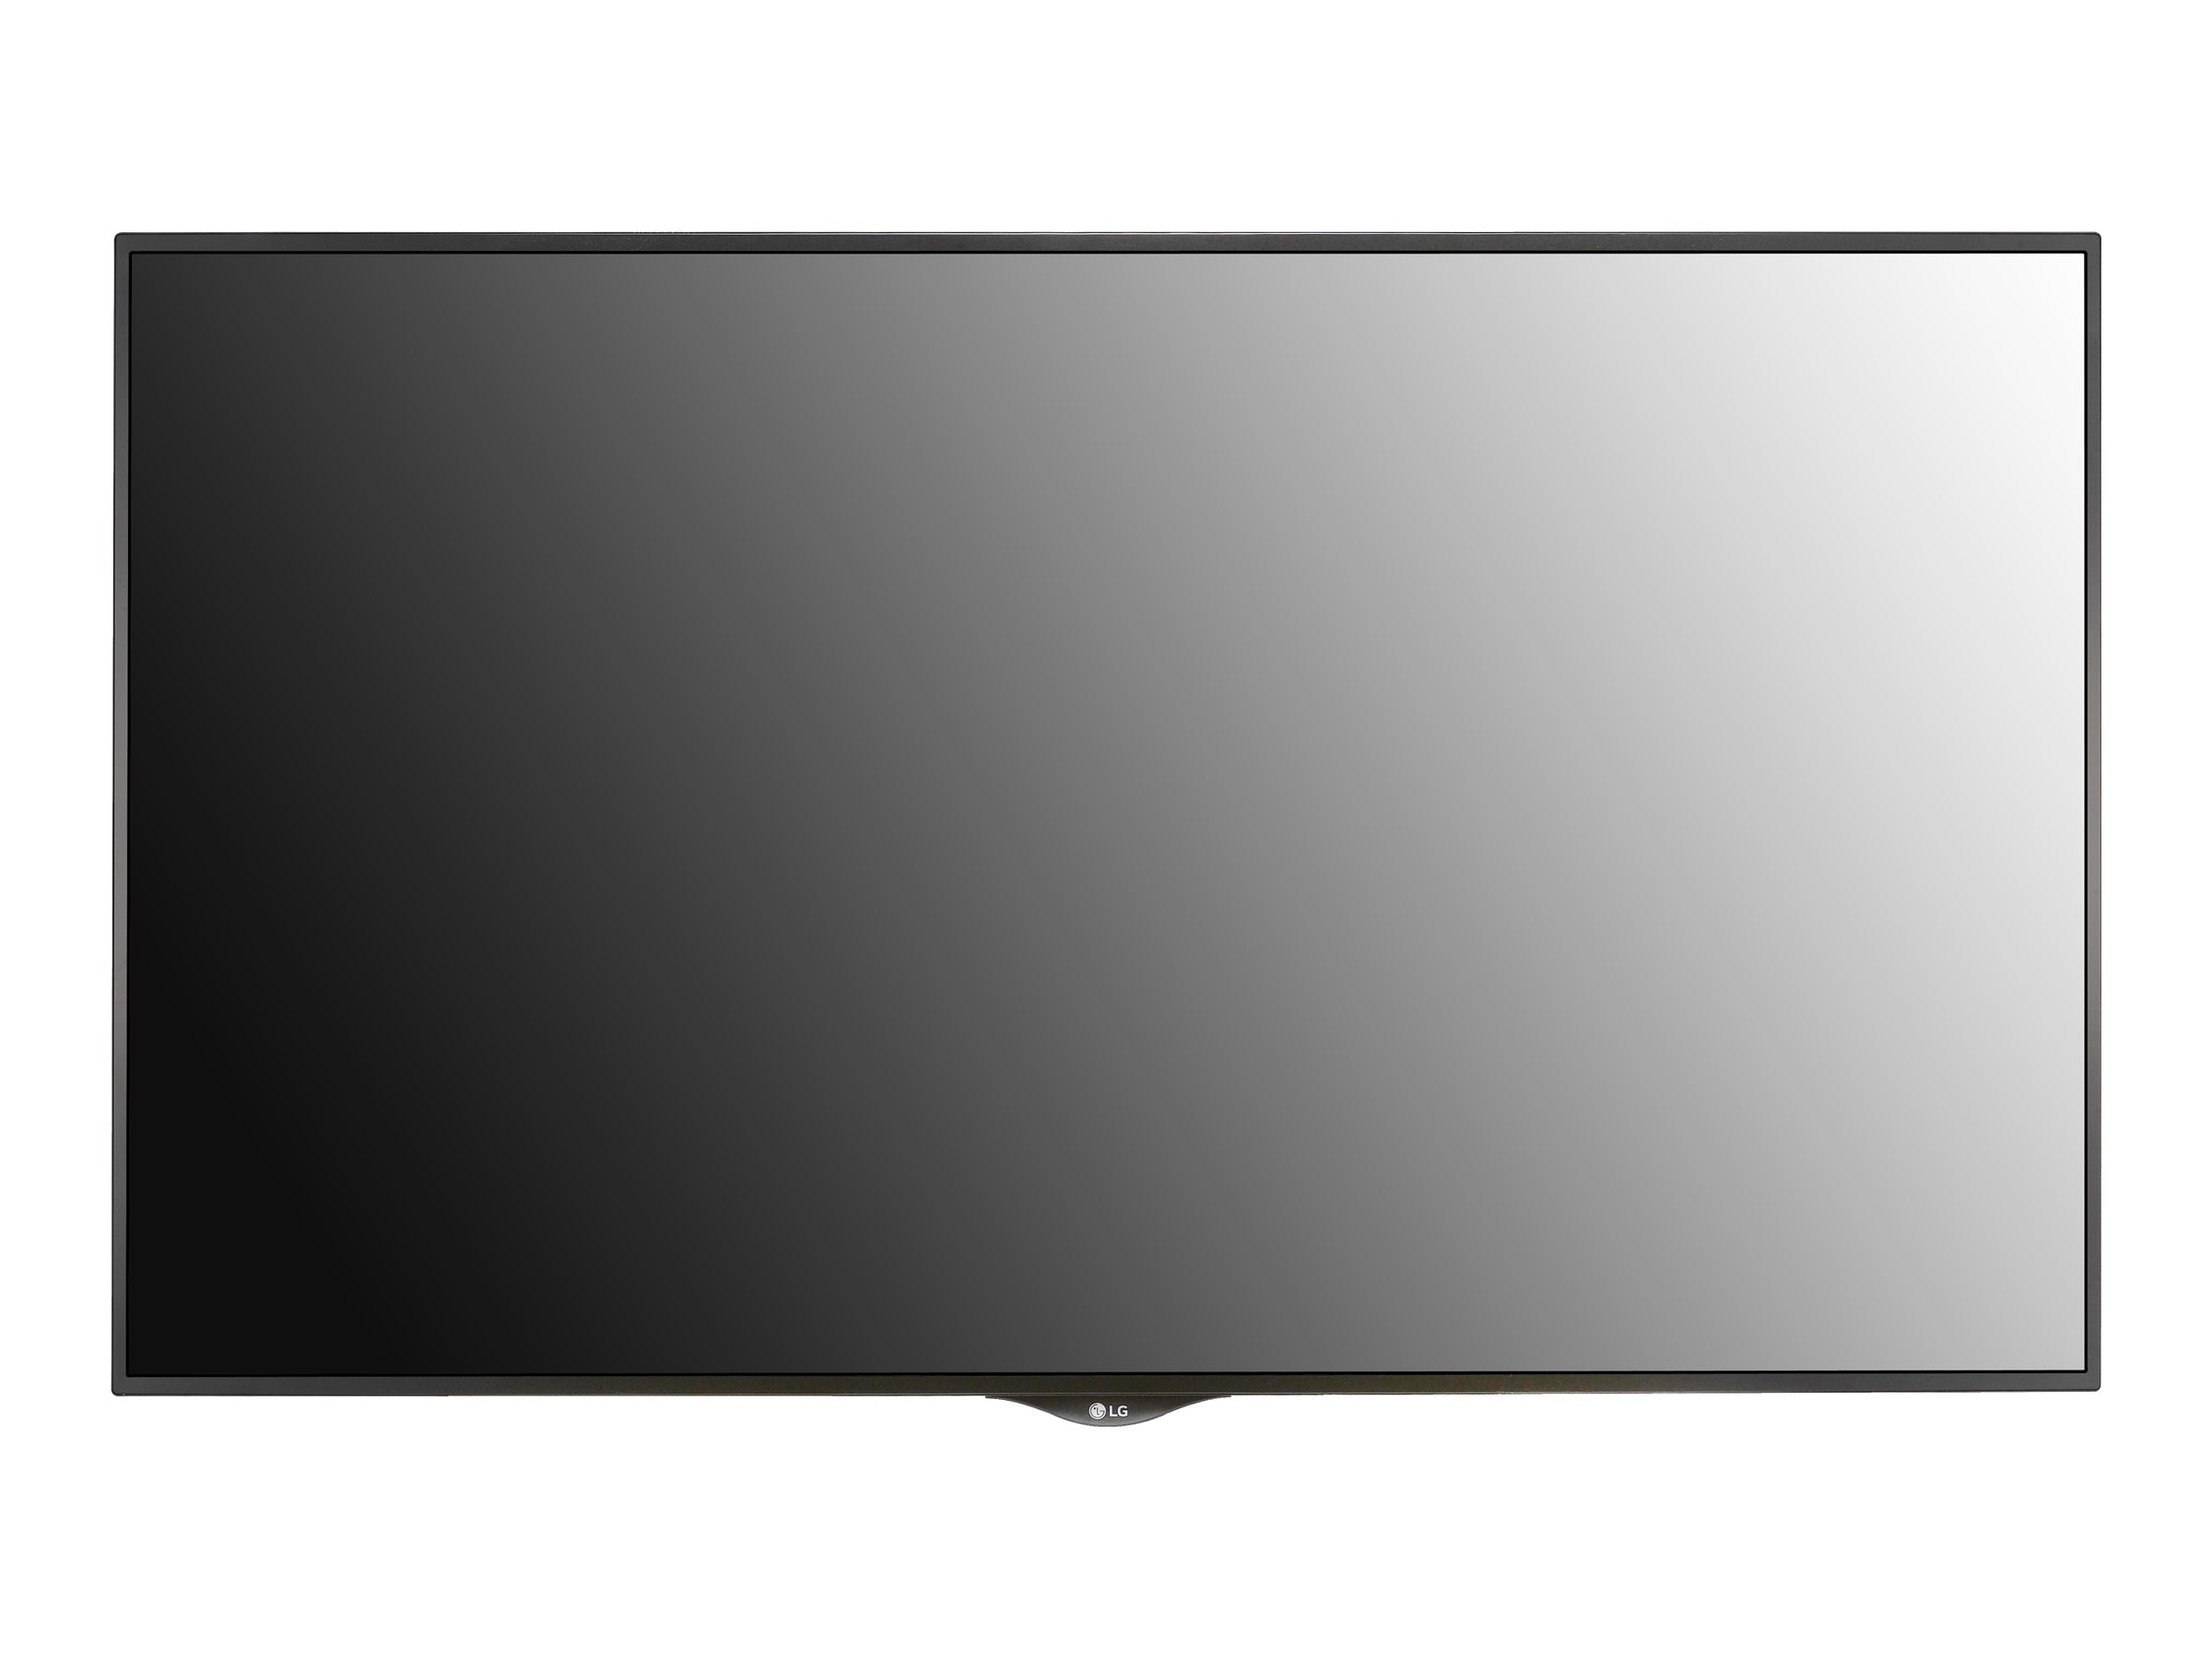 LG 55 XS2B-B Full HD LED-LCD Hospitality TV, Black, 55XS2B-B, 30597549, Televisions - LED-LCD Commercial